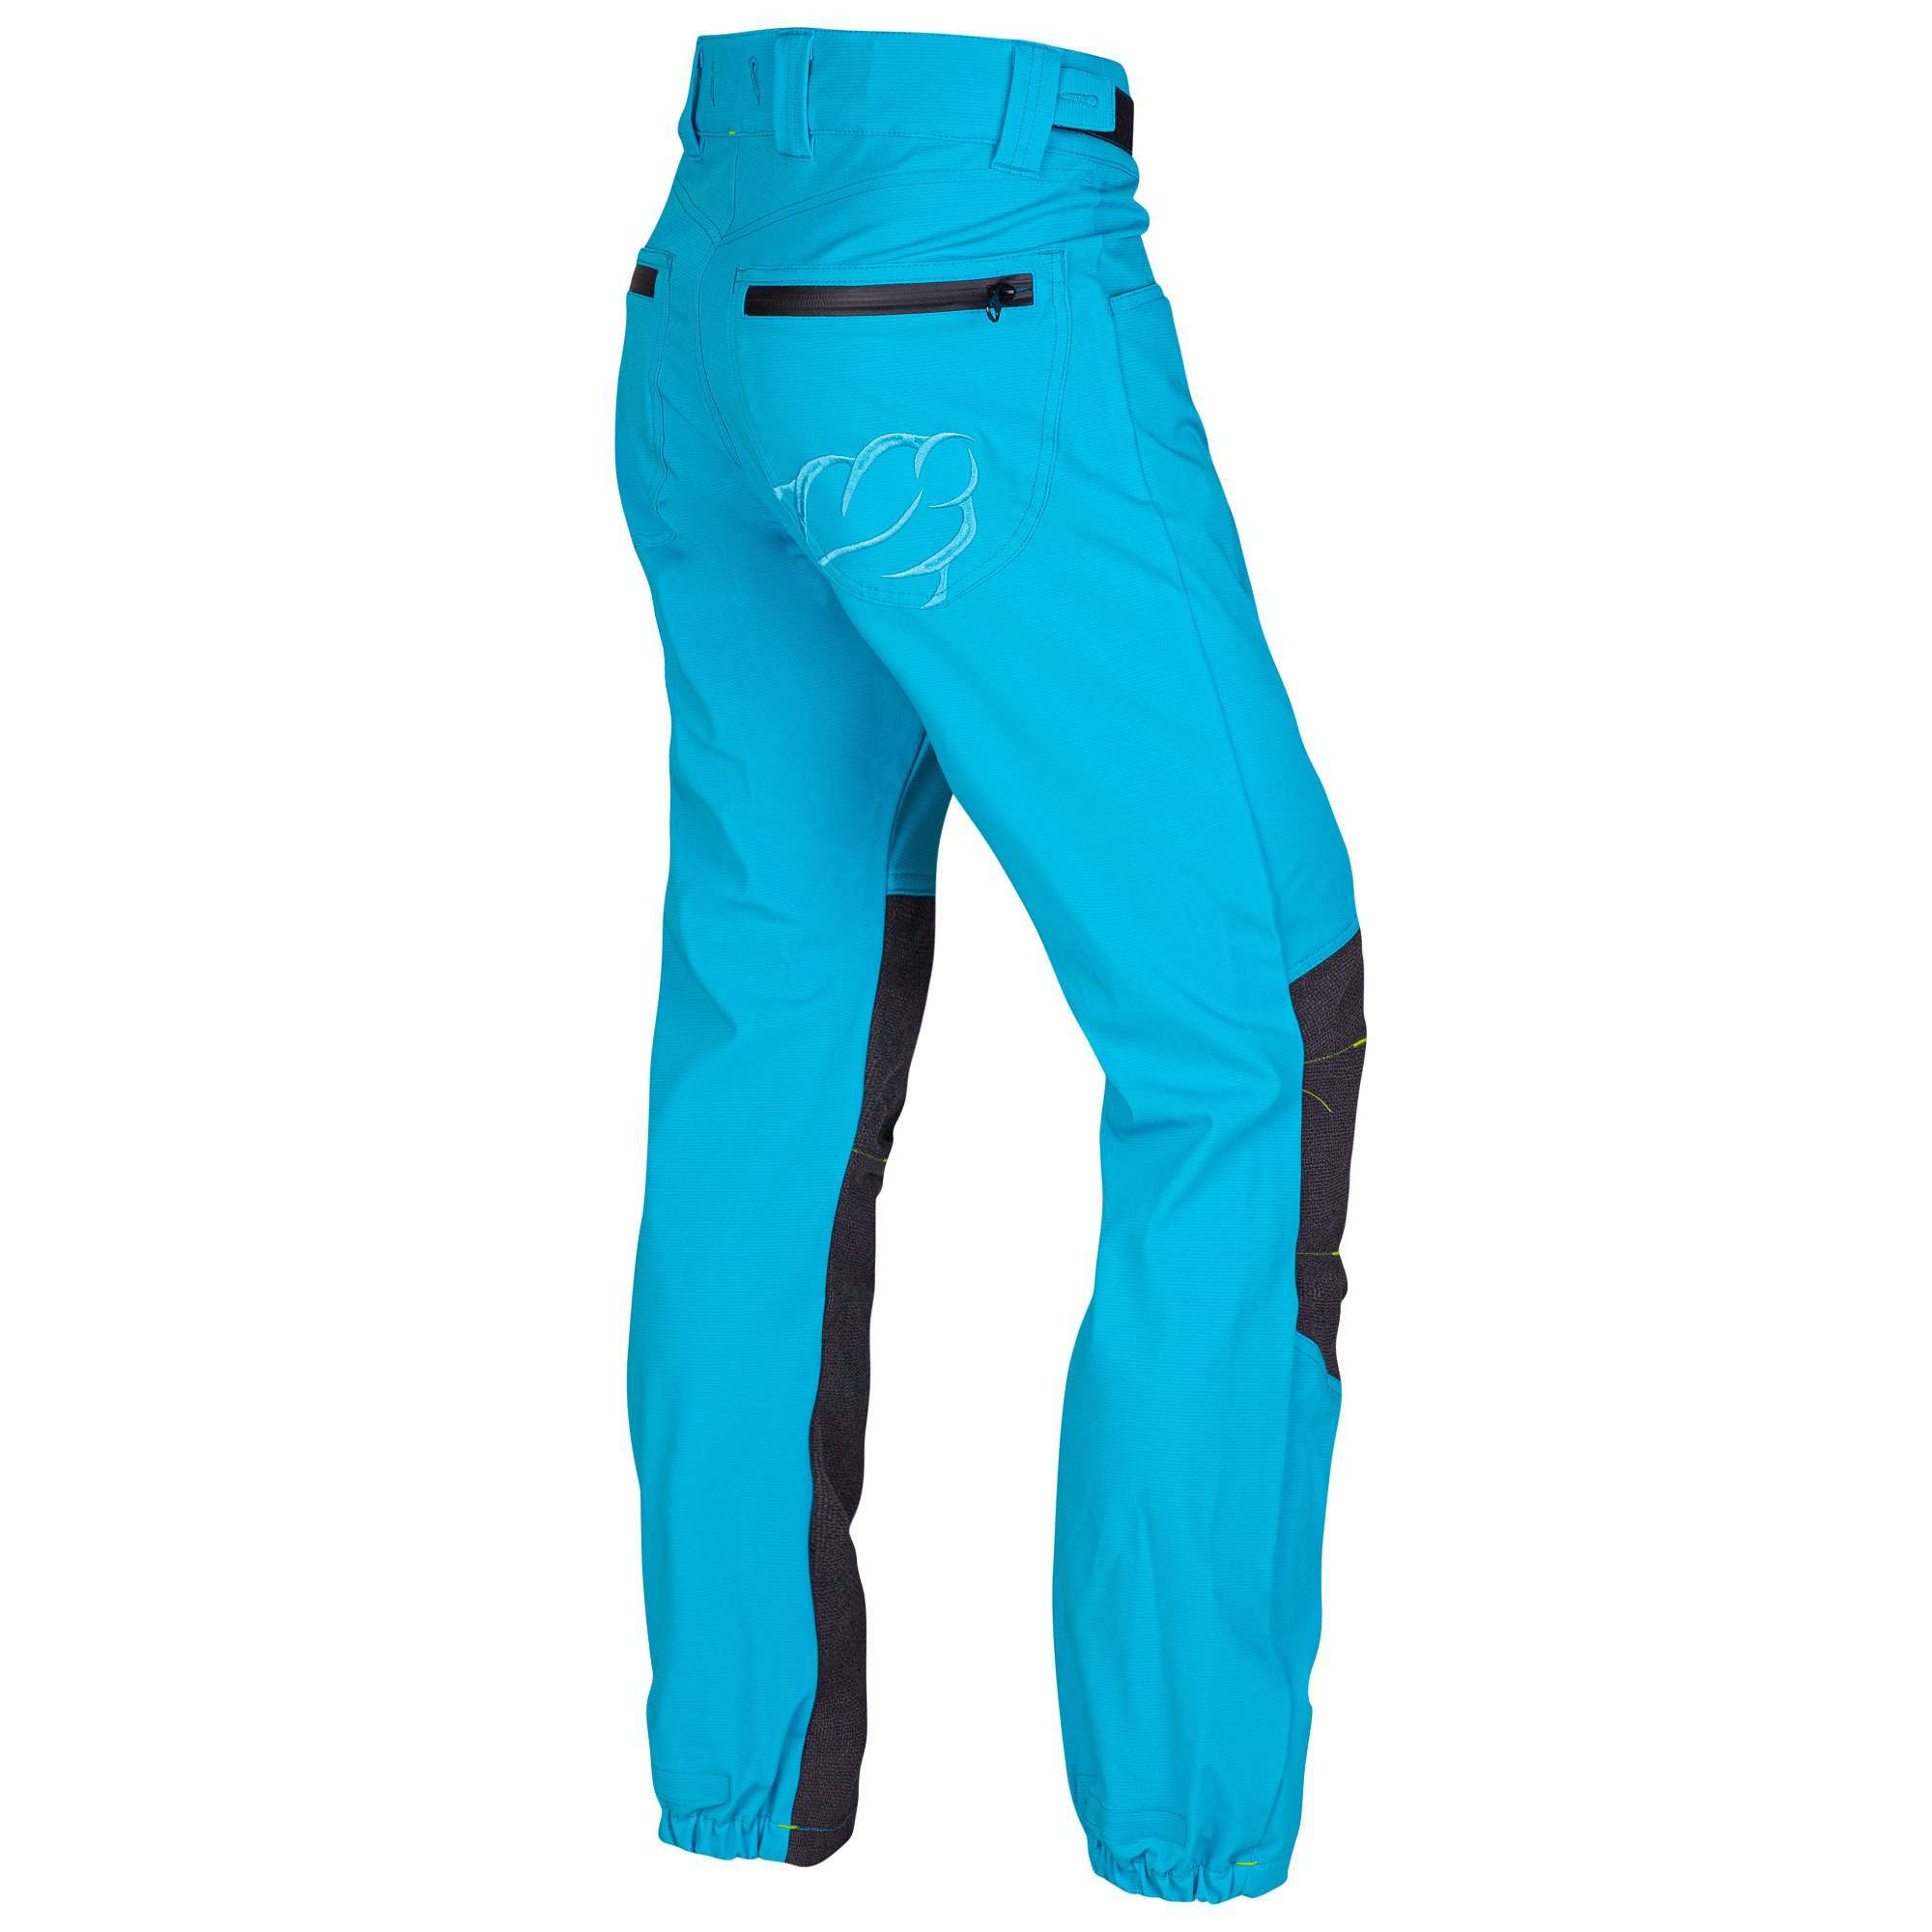 Arborflex Casual Skin Trousers - Aqua - AT4156